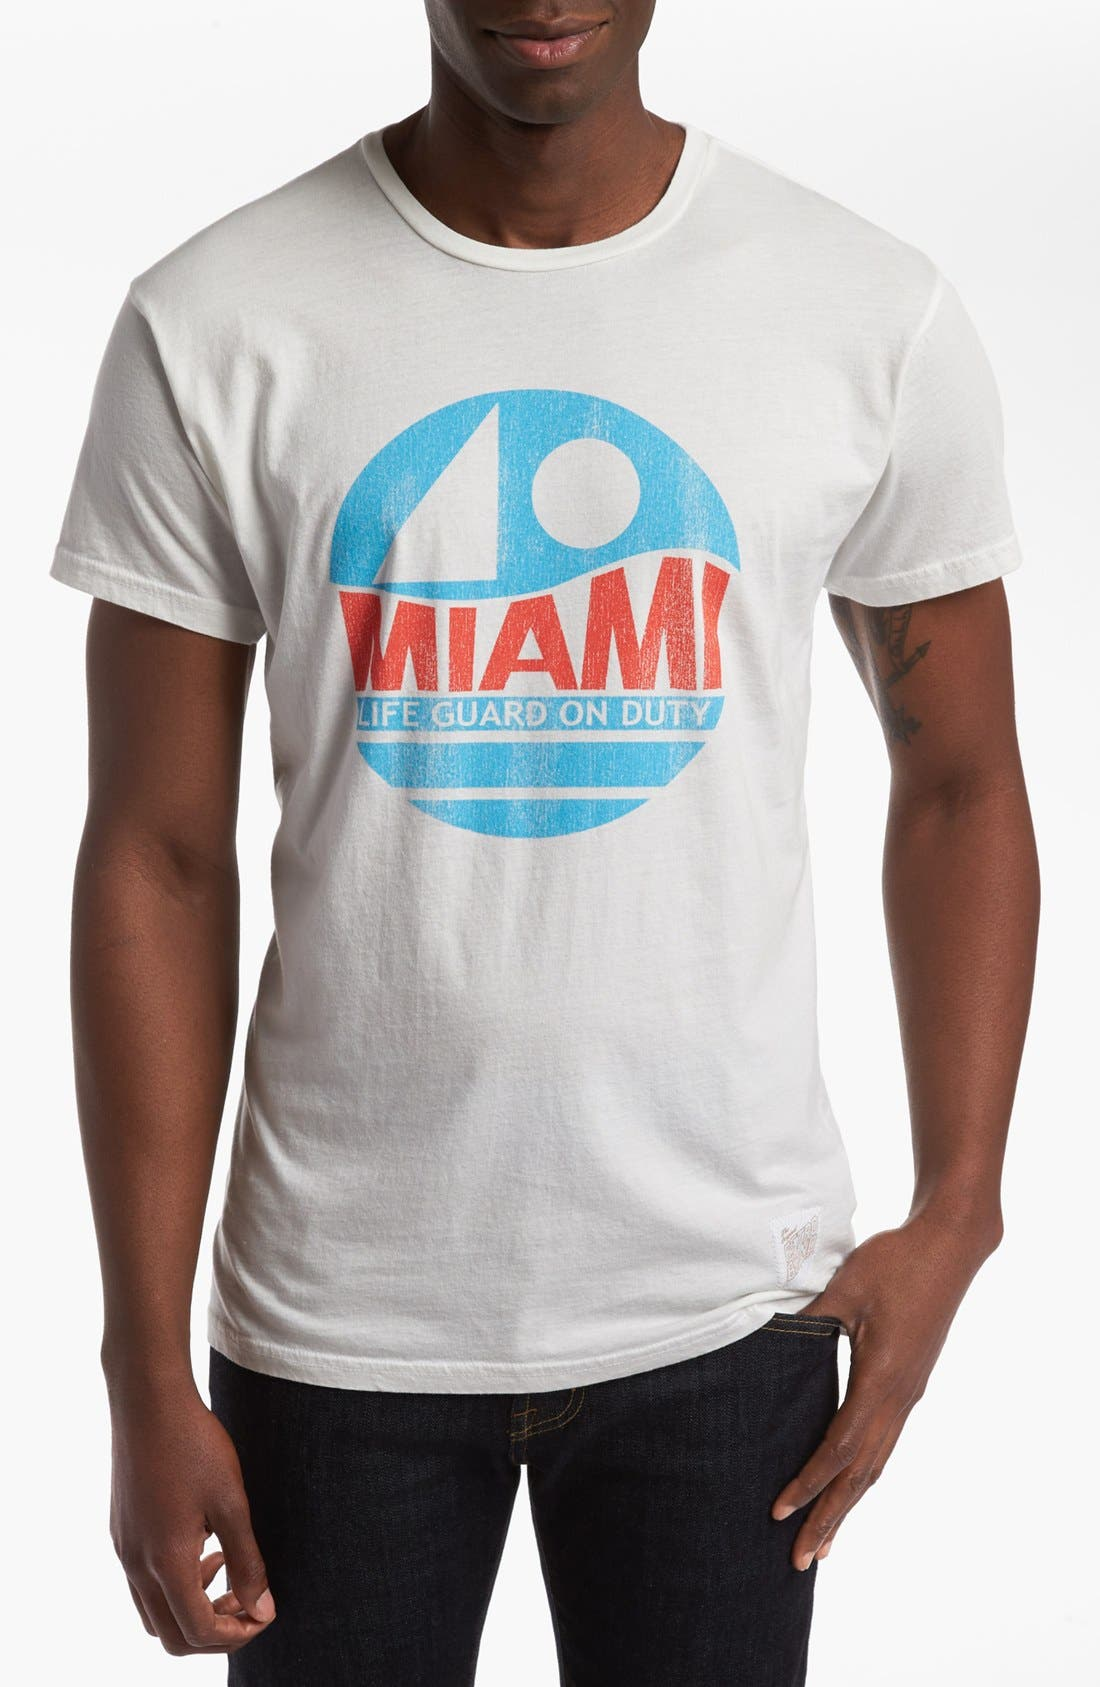 Alternate Image 1 Selected - Retro Brand 'Miami' T-Shirt